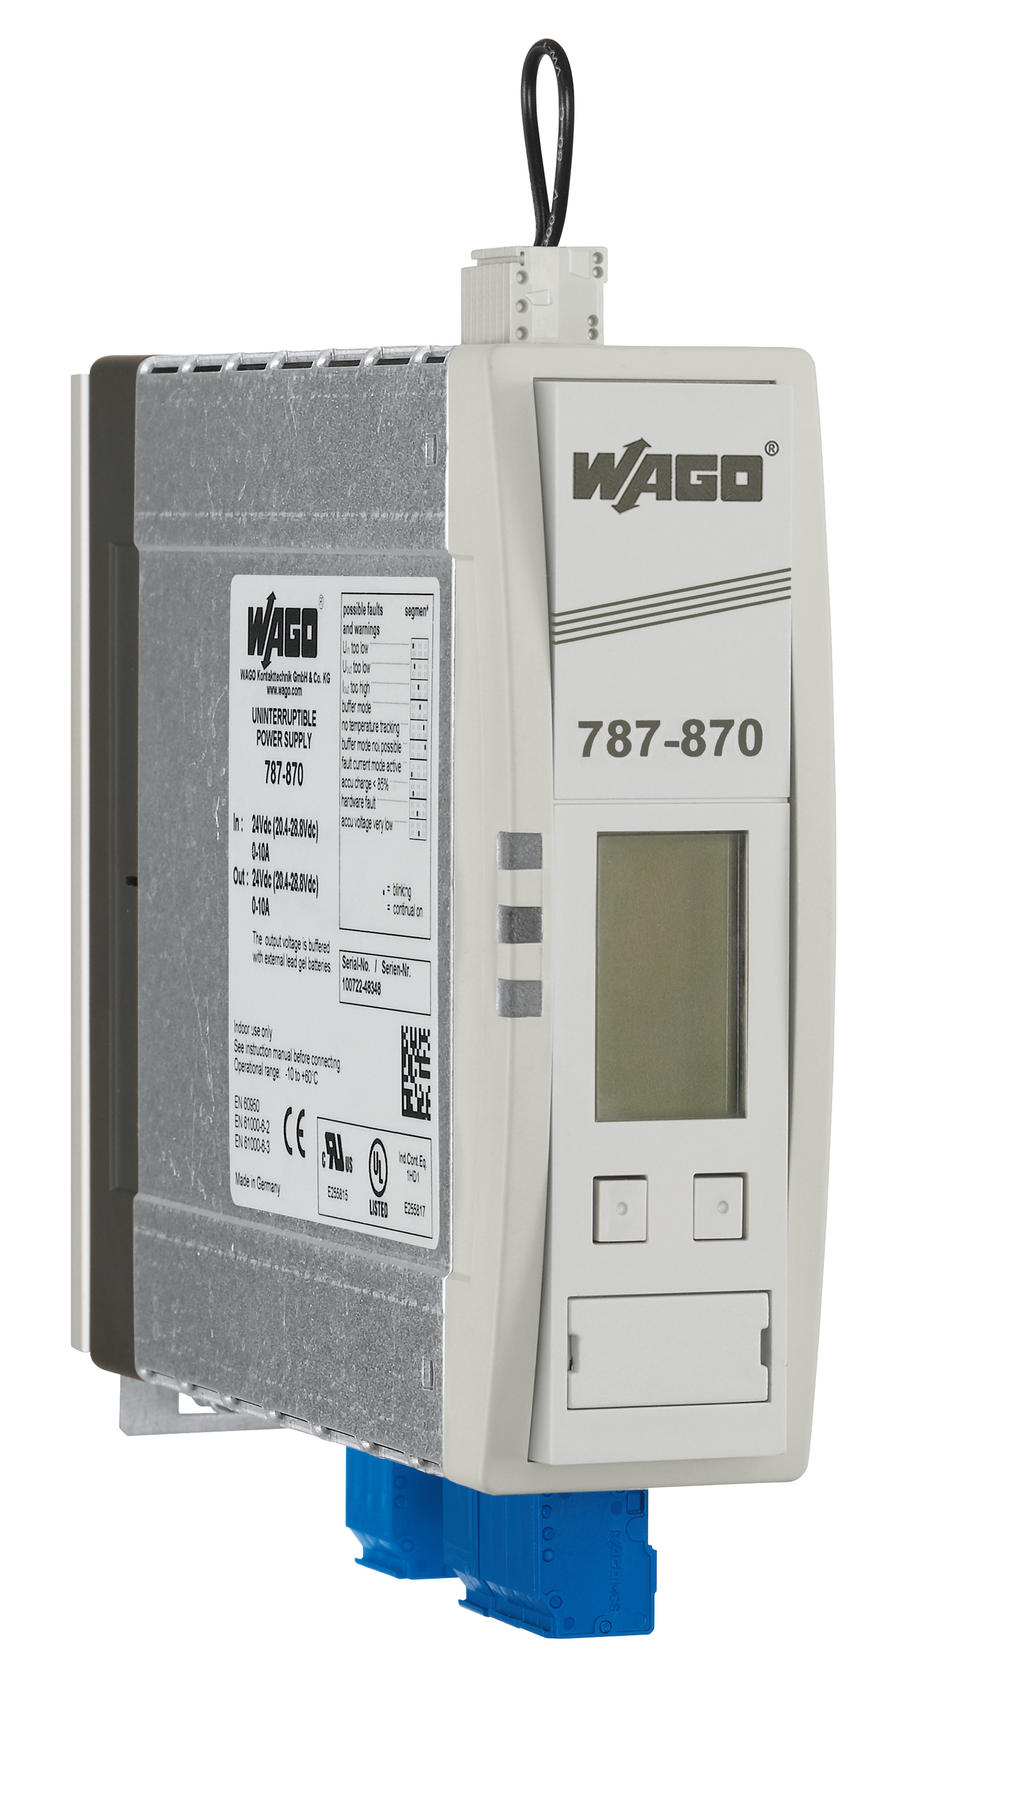 Wago Ups Charger And Controller 787 870 Frequency Circuit Includes Knife Switch Breaker Inverter 24 Vdc Input Voltage Output 10 A Current Linemonitor Communication Capability